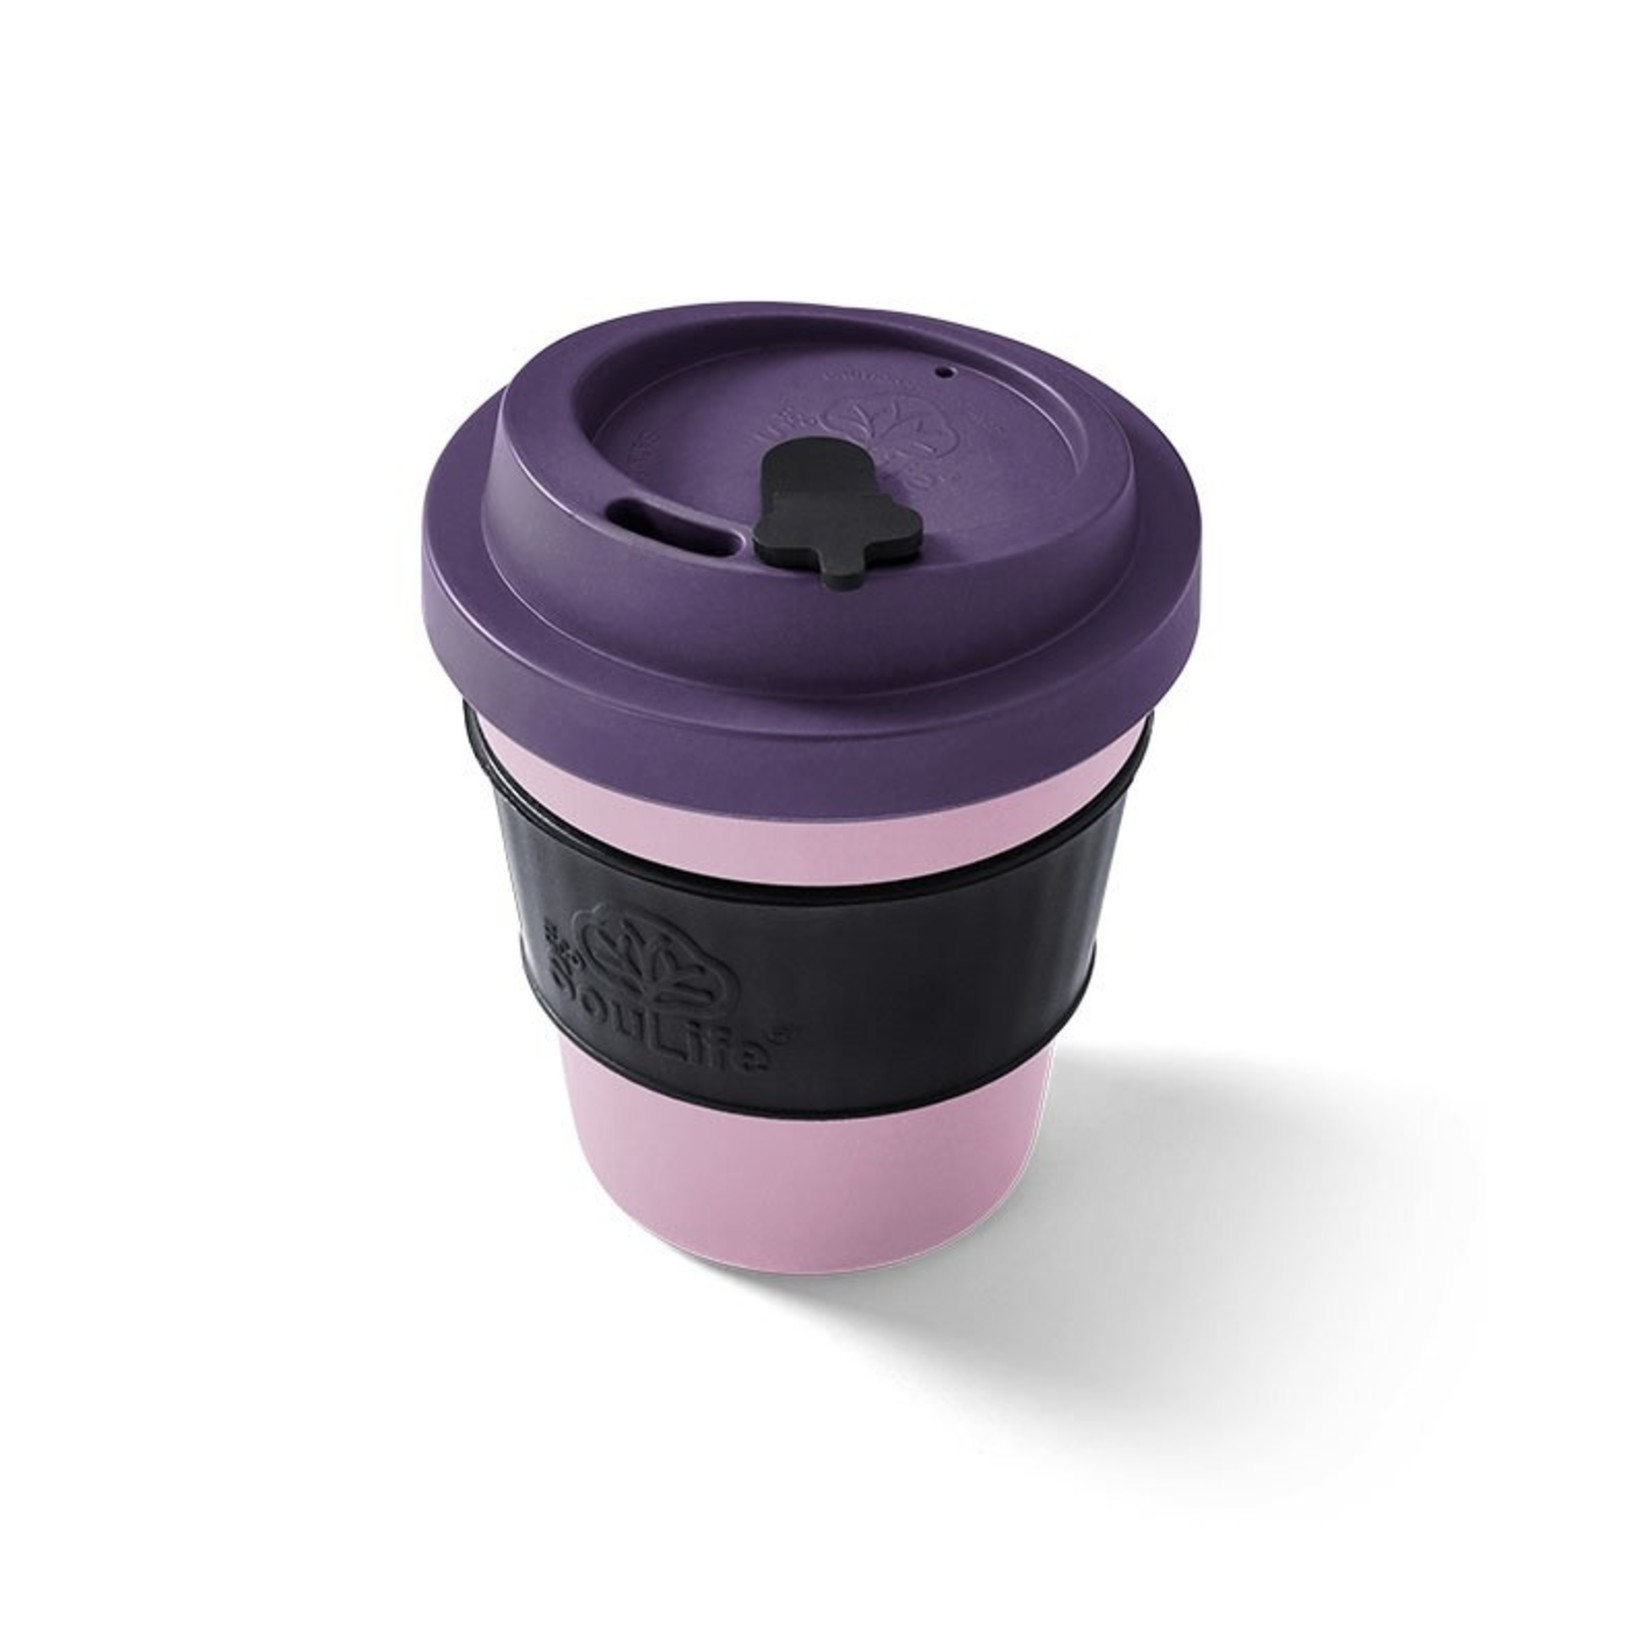 EcoSoulife EcoSoulife 12oz BioSip Cup